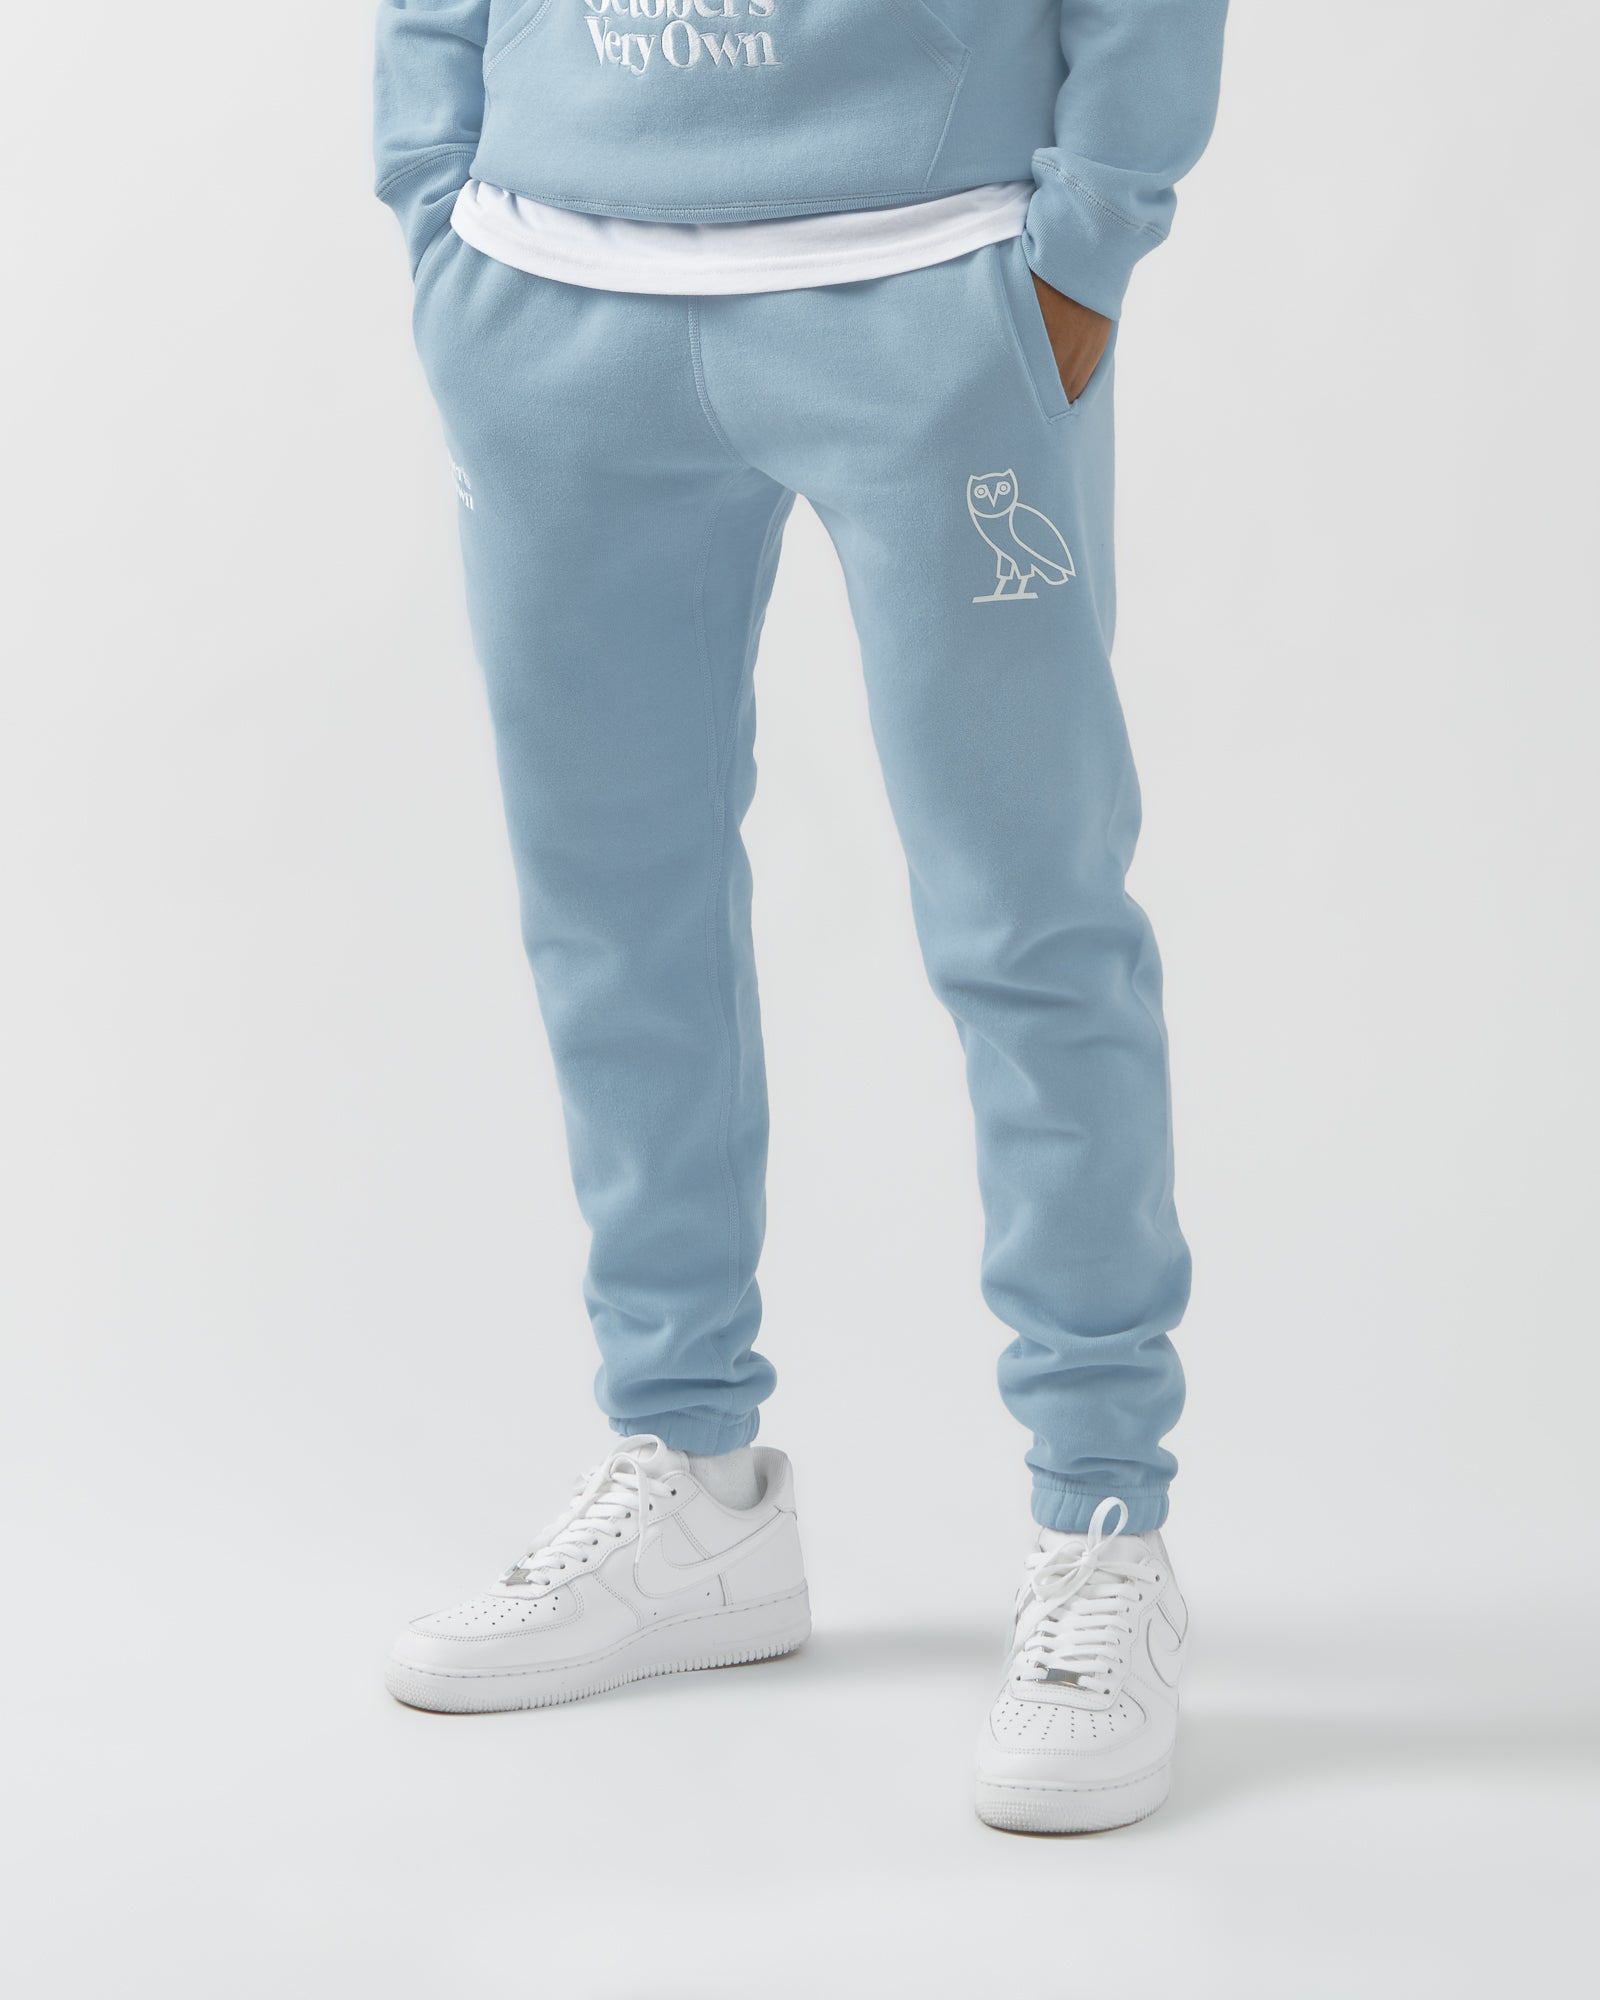 FAMILIA EMBROIDERED SWEATPANT - SKY BLUE IMAGE #3